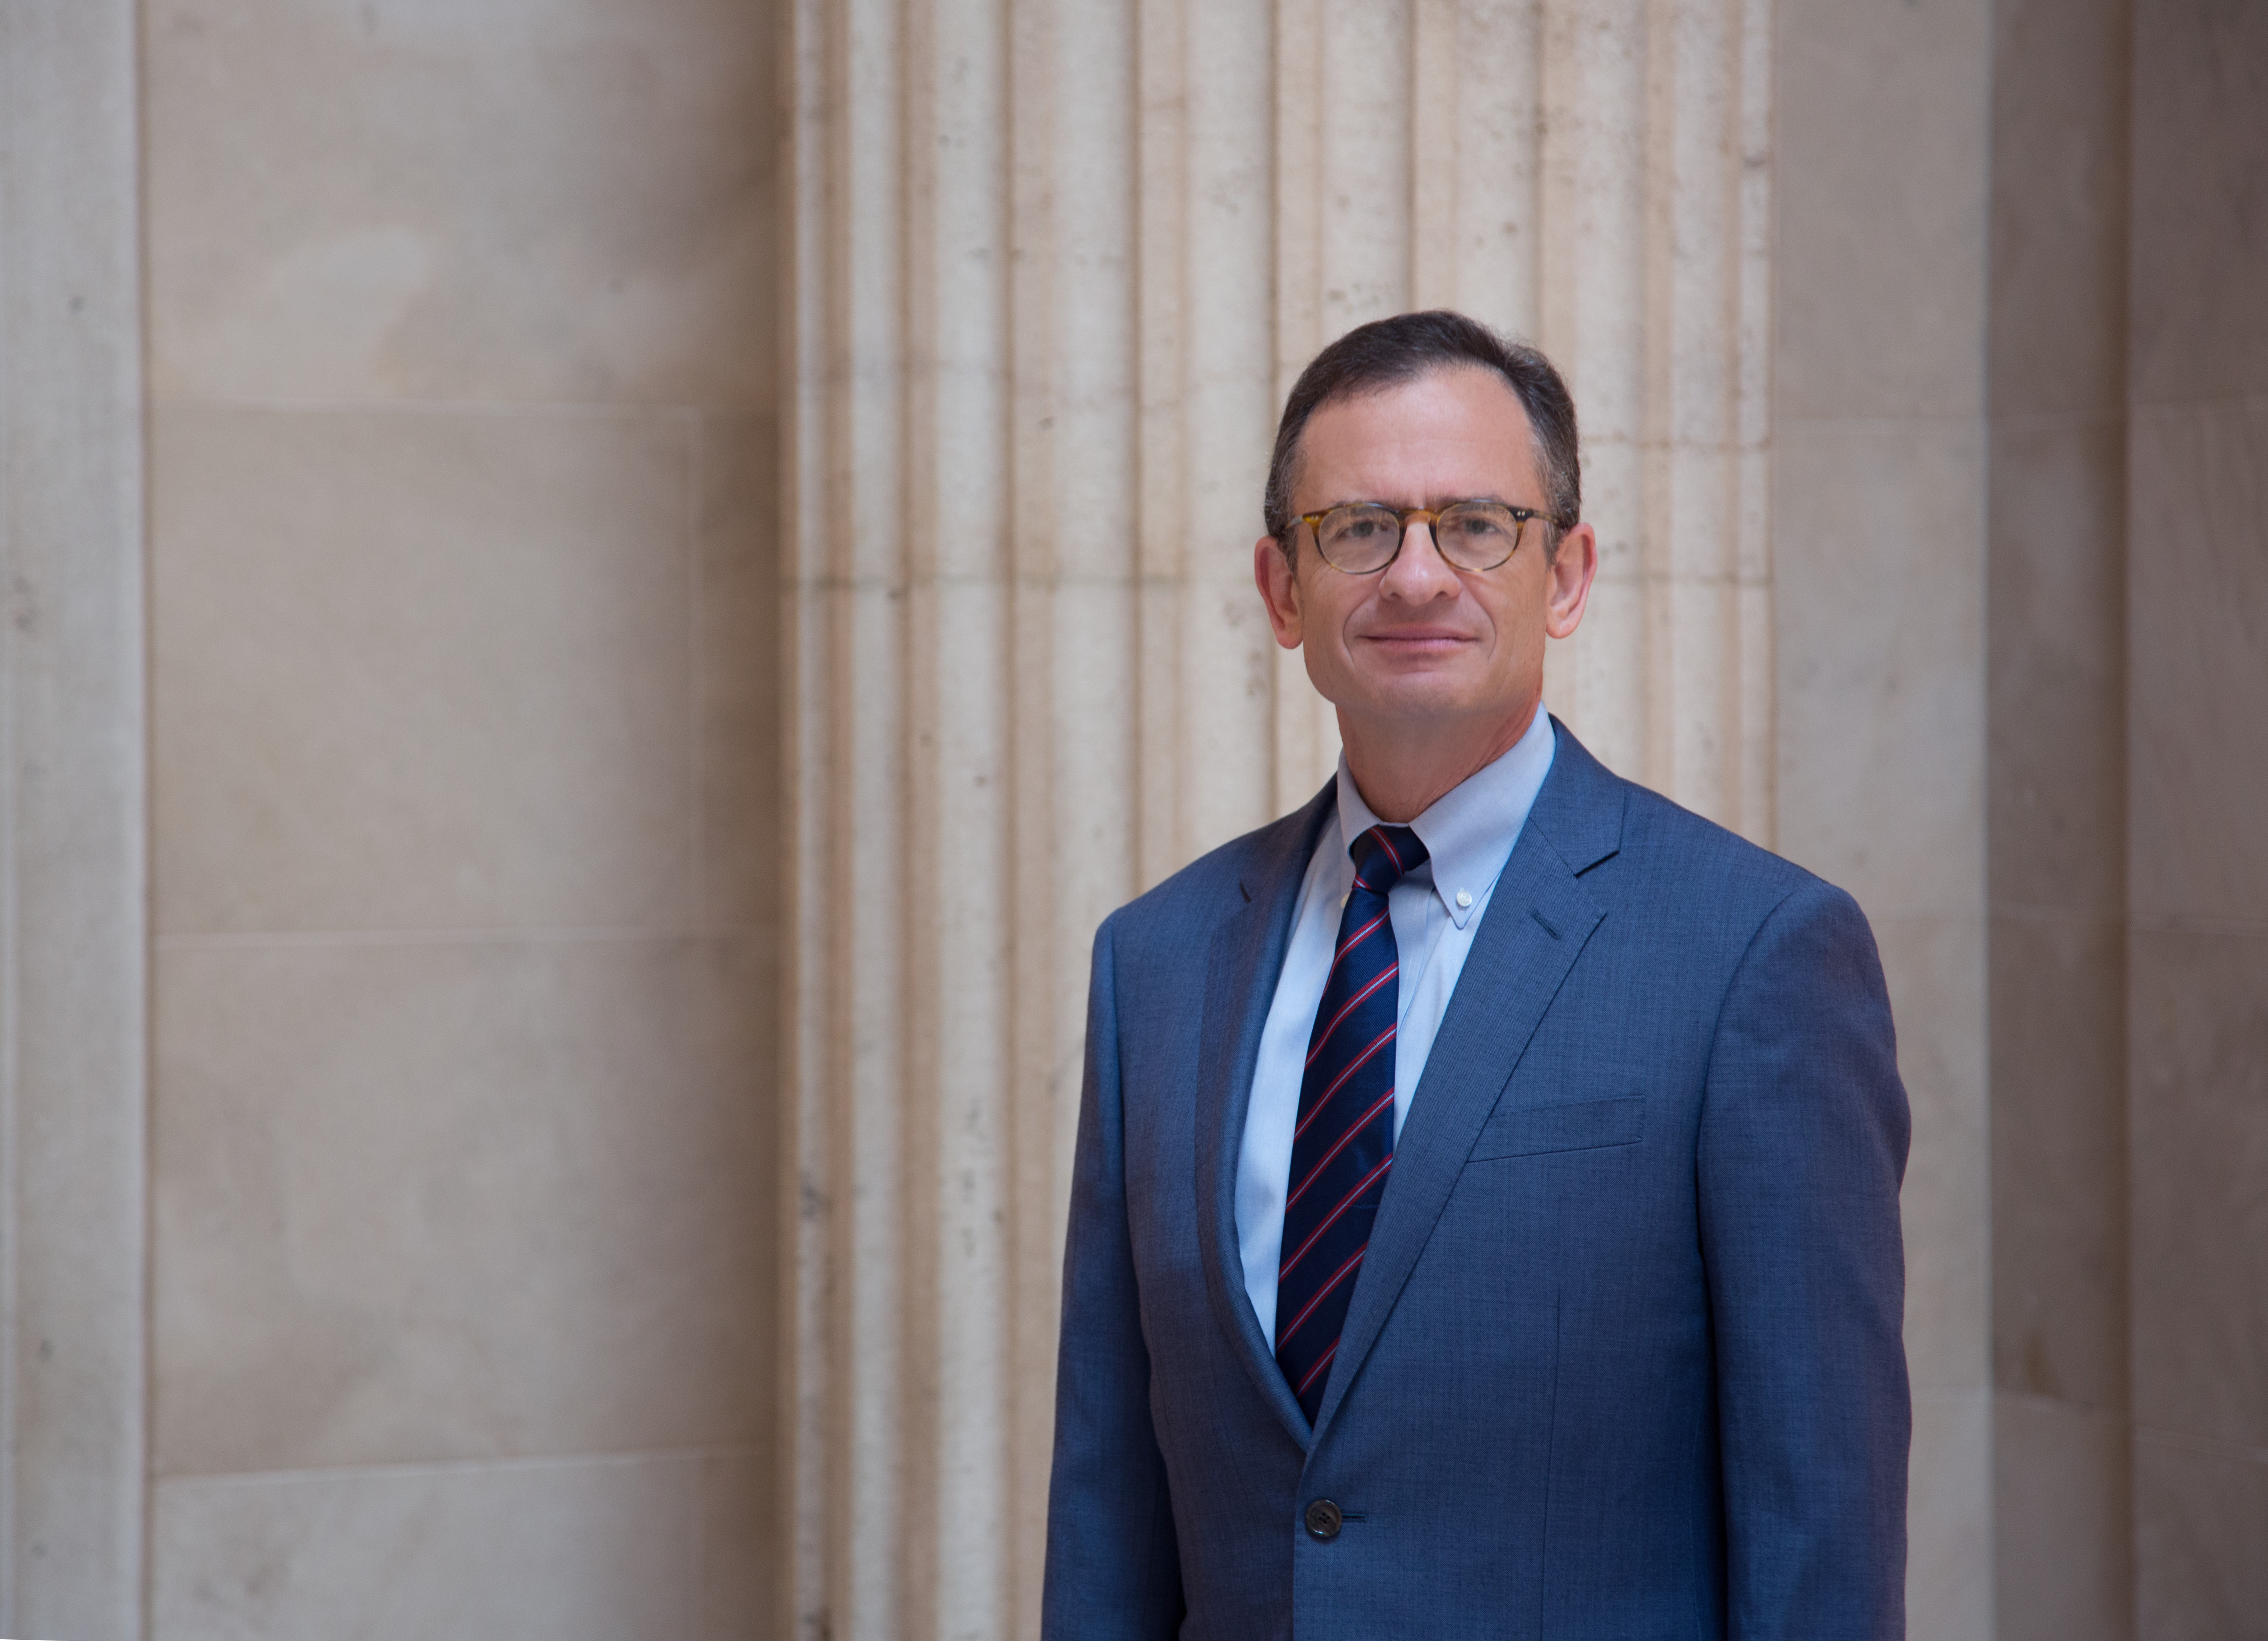 Daniel Weiss, president and CEO of the Metropolitan Museum of Art